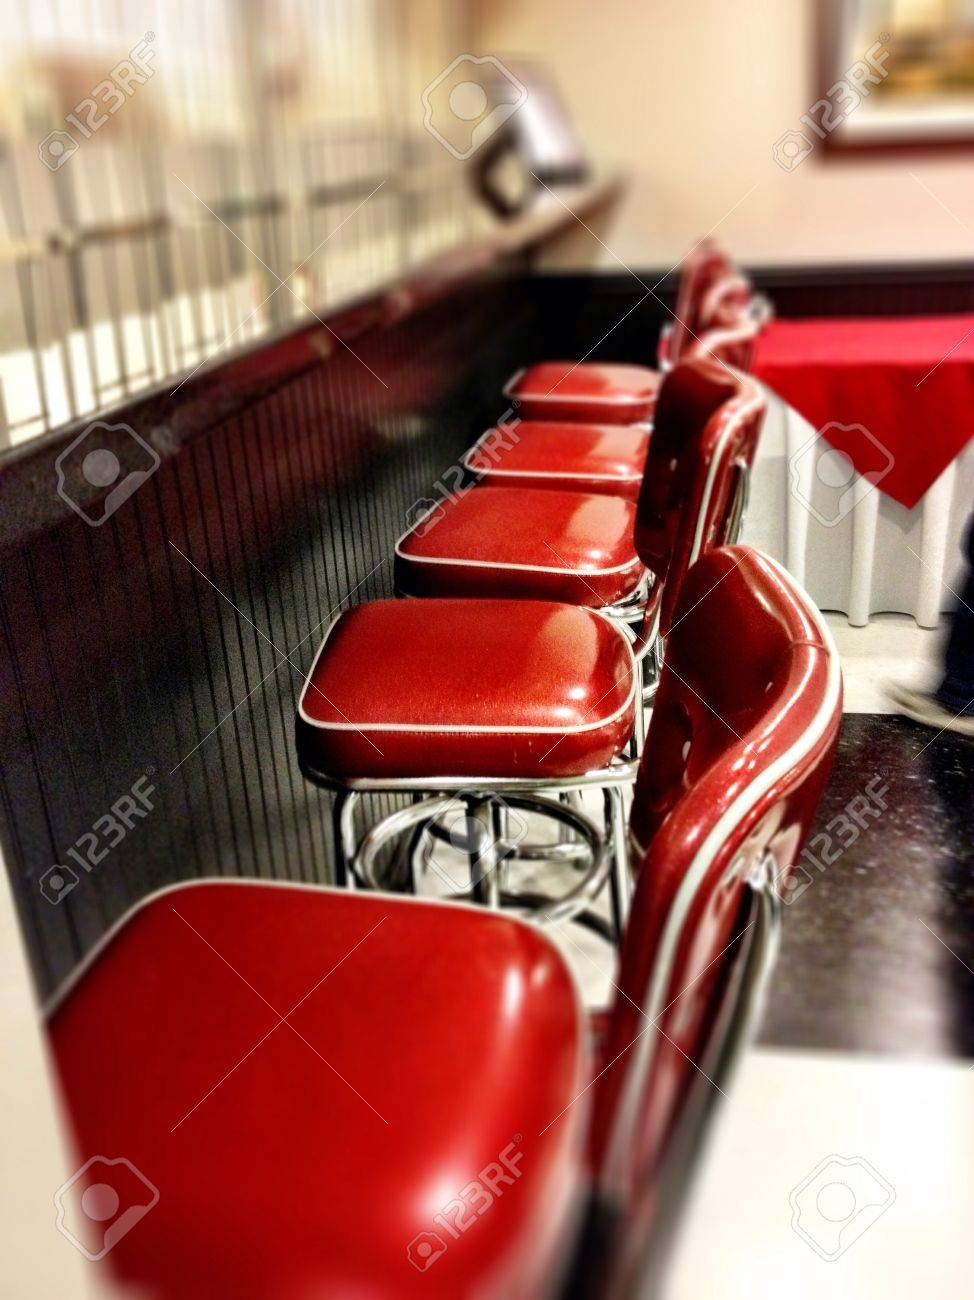 50s Diner Bar Stools Stock Photo Picture And Royalty Free Image